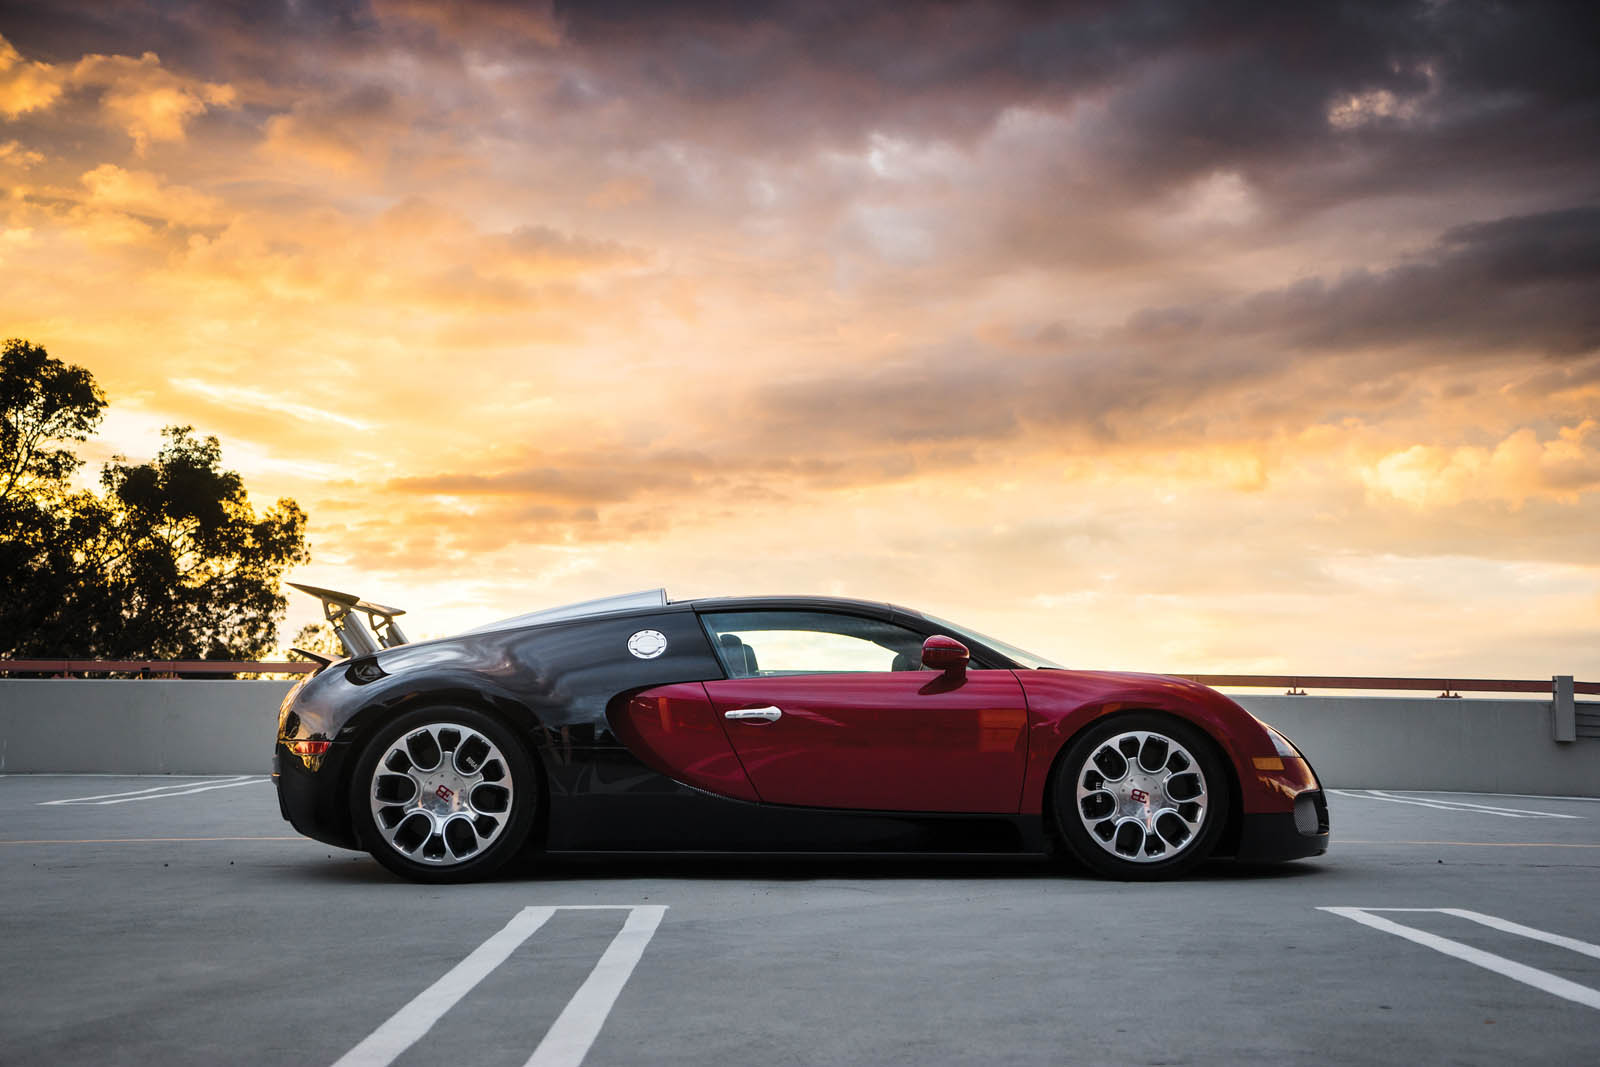 Bugatti_Veyron_Grand_Sport_for_sale_28